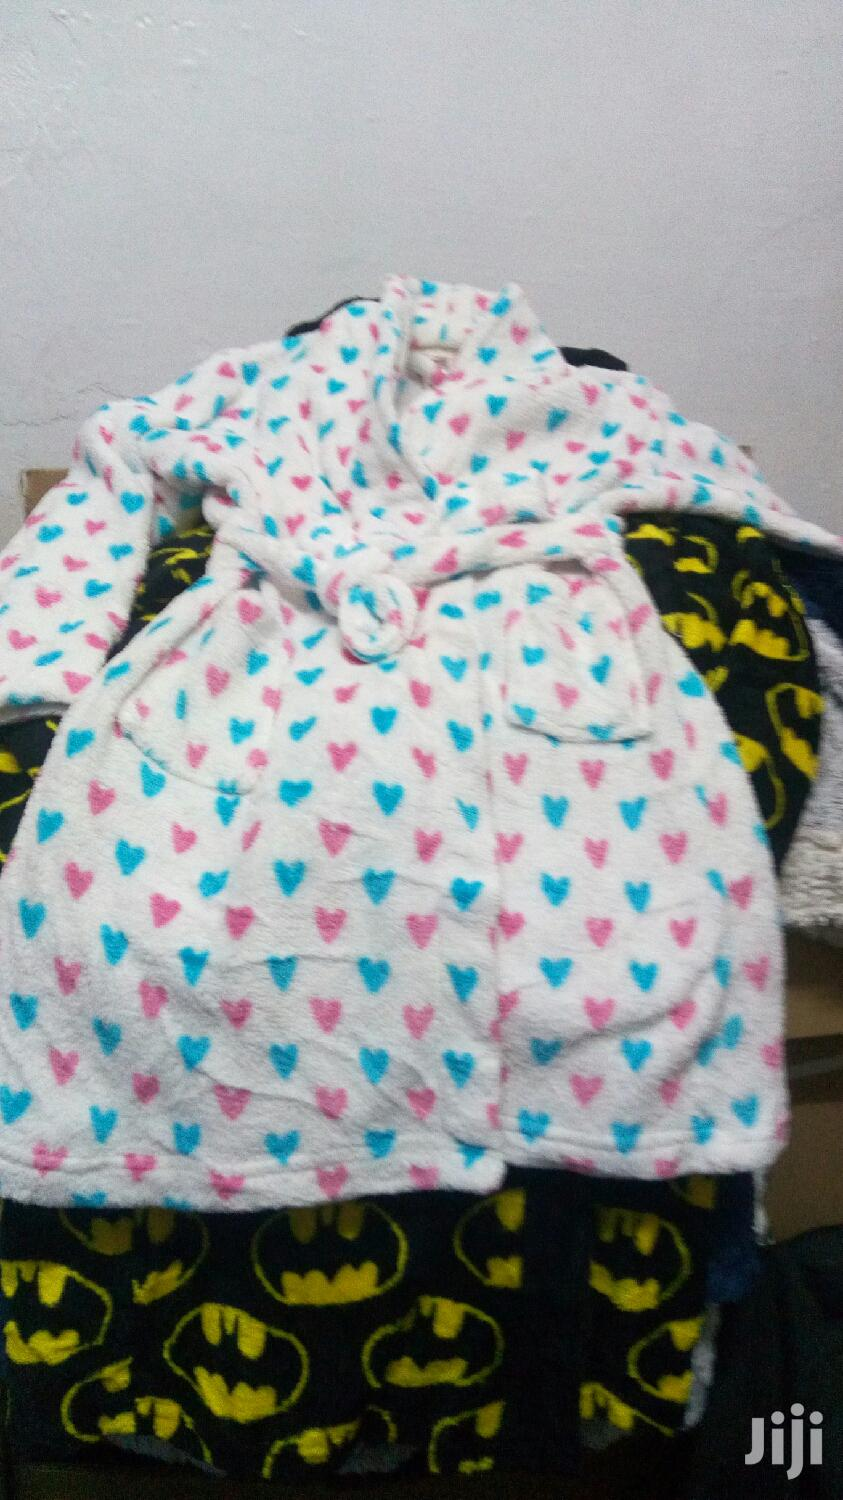 Bathing Robe/ Gown / Towel With A Hood | Children's Clothing for sale in Nairobi Central, Nairobi, Kenya